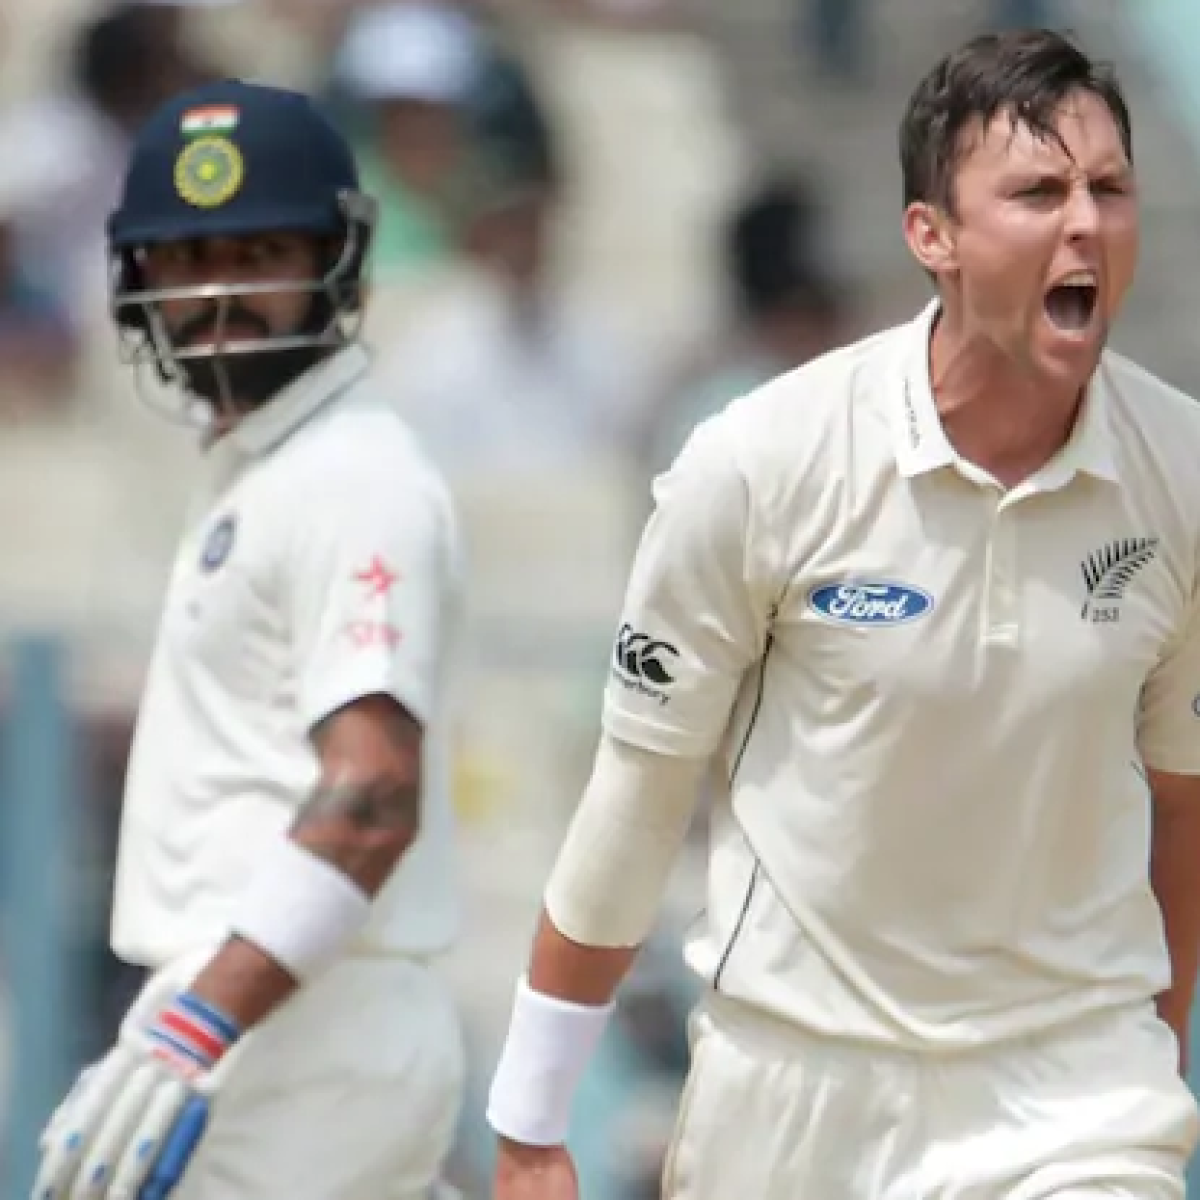 NZ vs IND Test series: Boult out to take Kohli's wicket